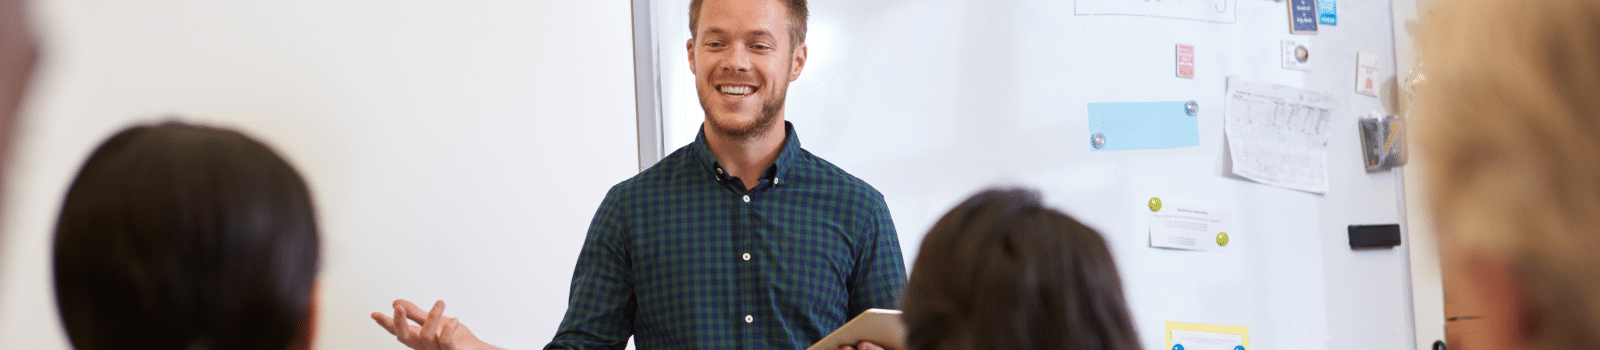 A male teacher standing in front of a whiteboard